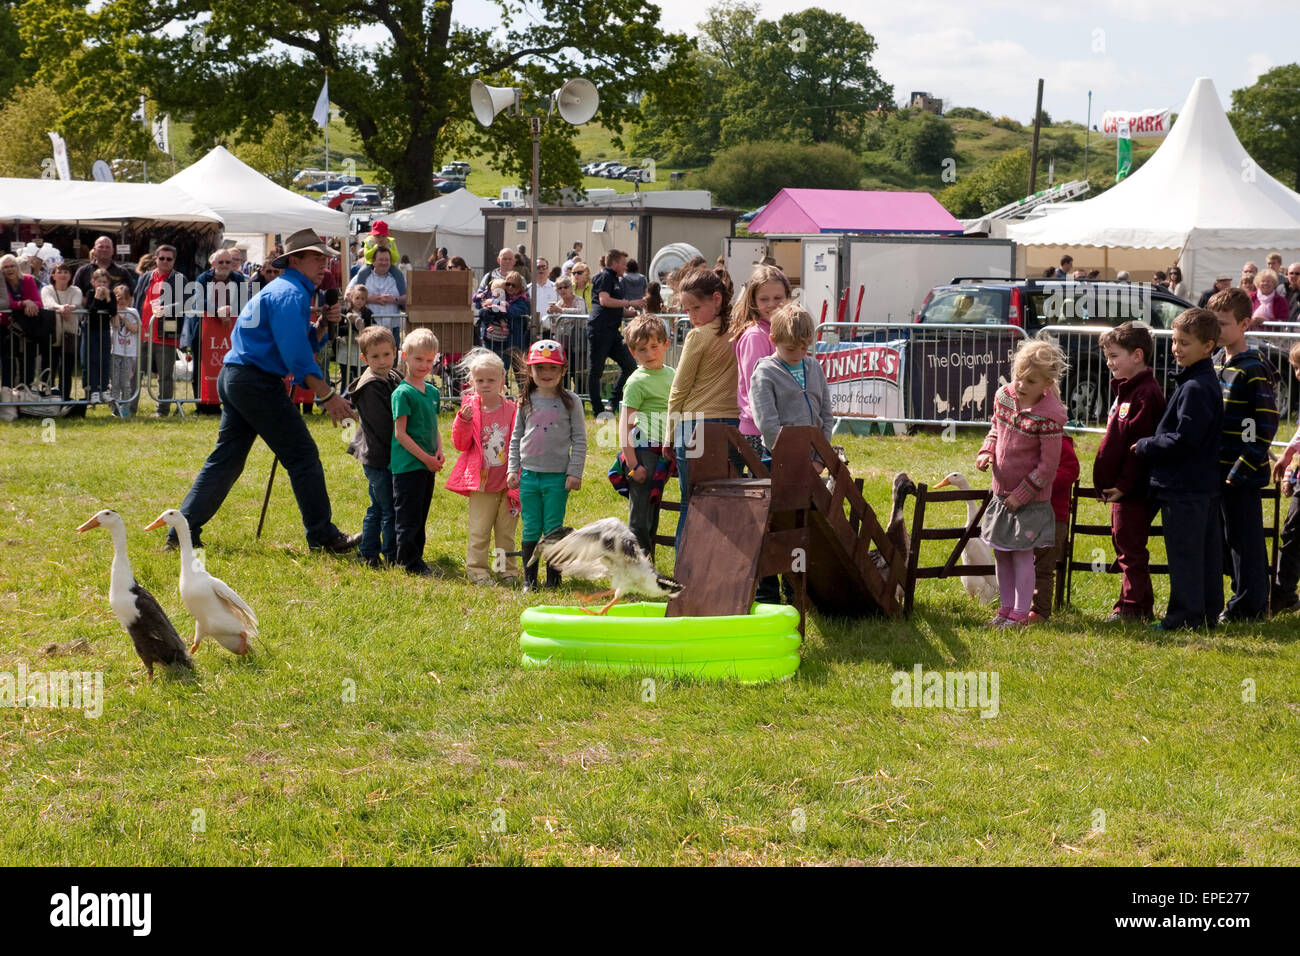 Children watch at a display of Indian Runner ducks at a UK country show - Stock Image